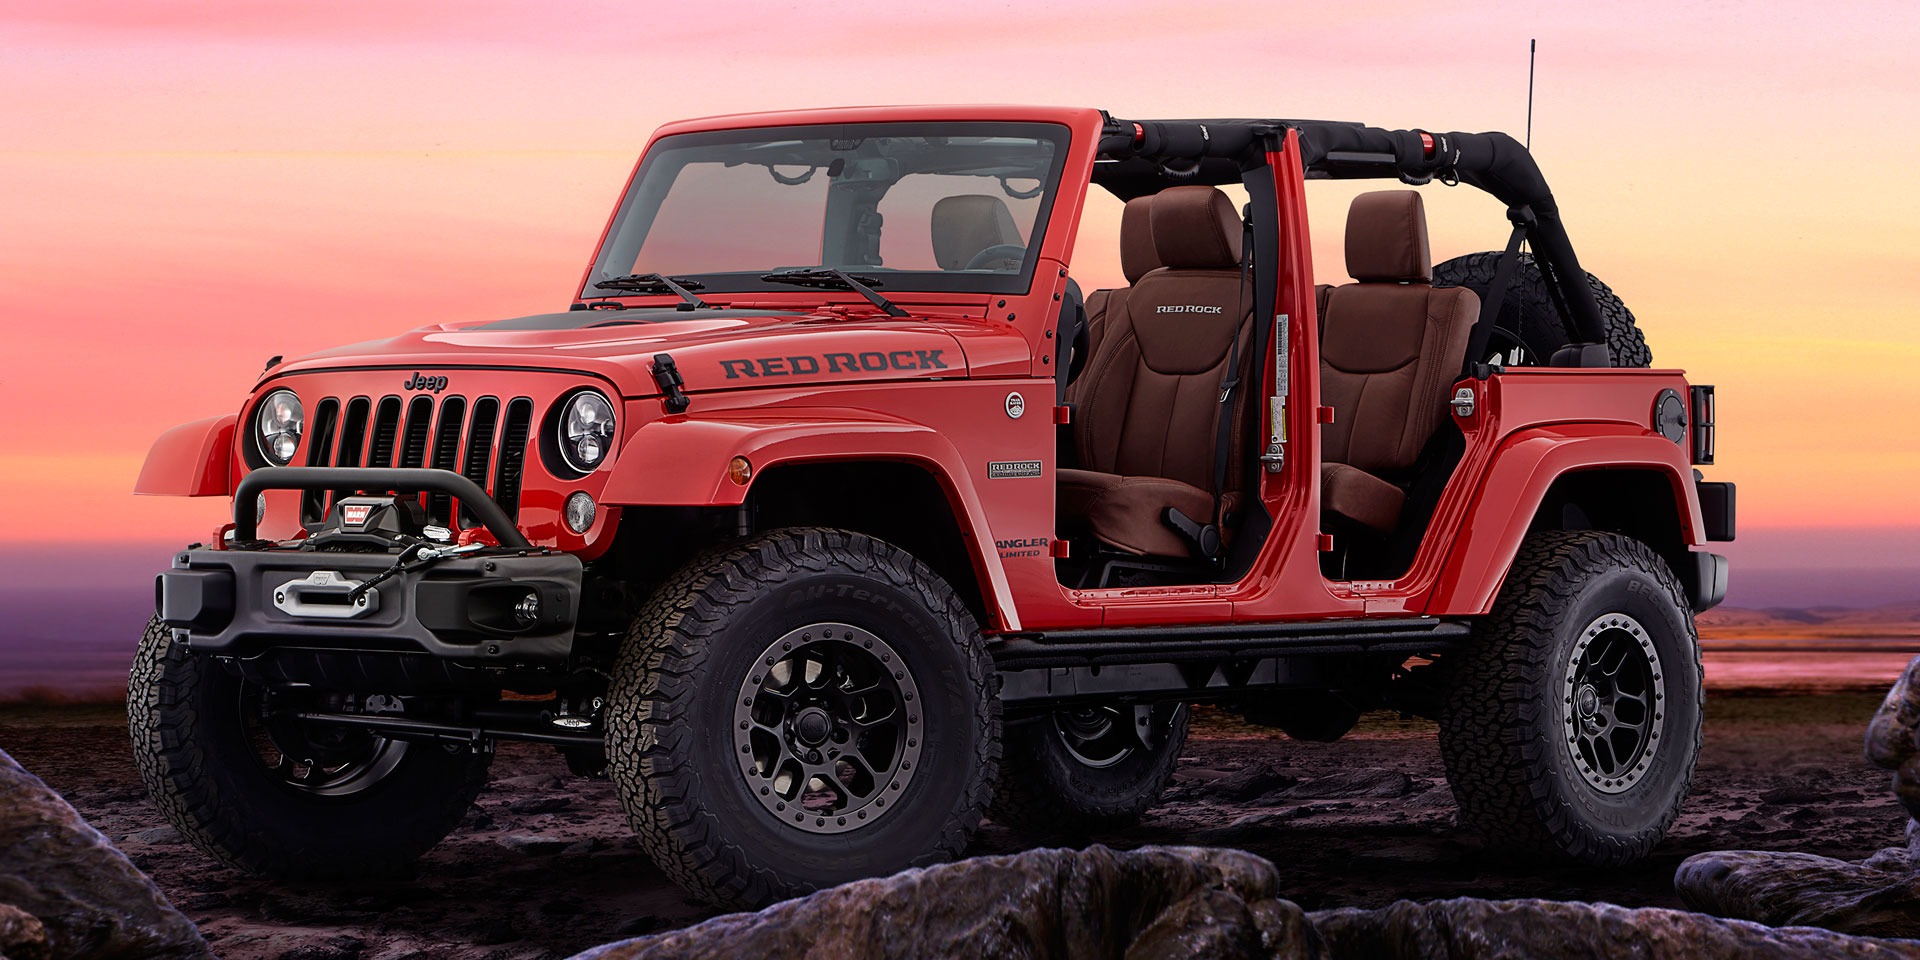 2016 Jeep Wrangler Red Rock